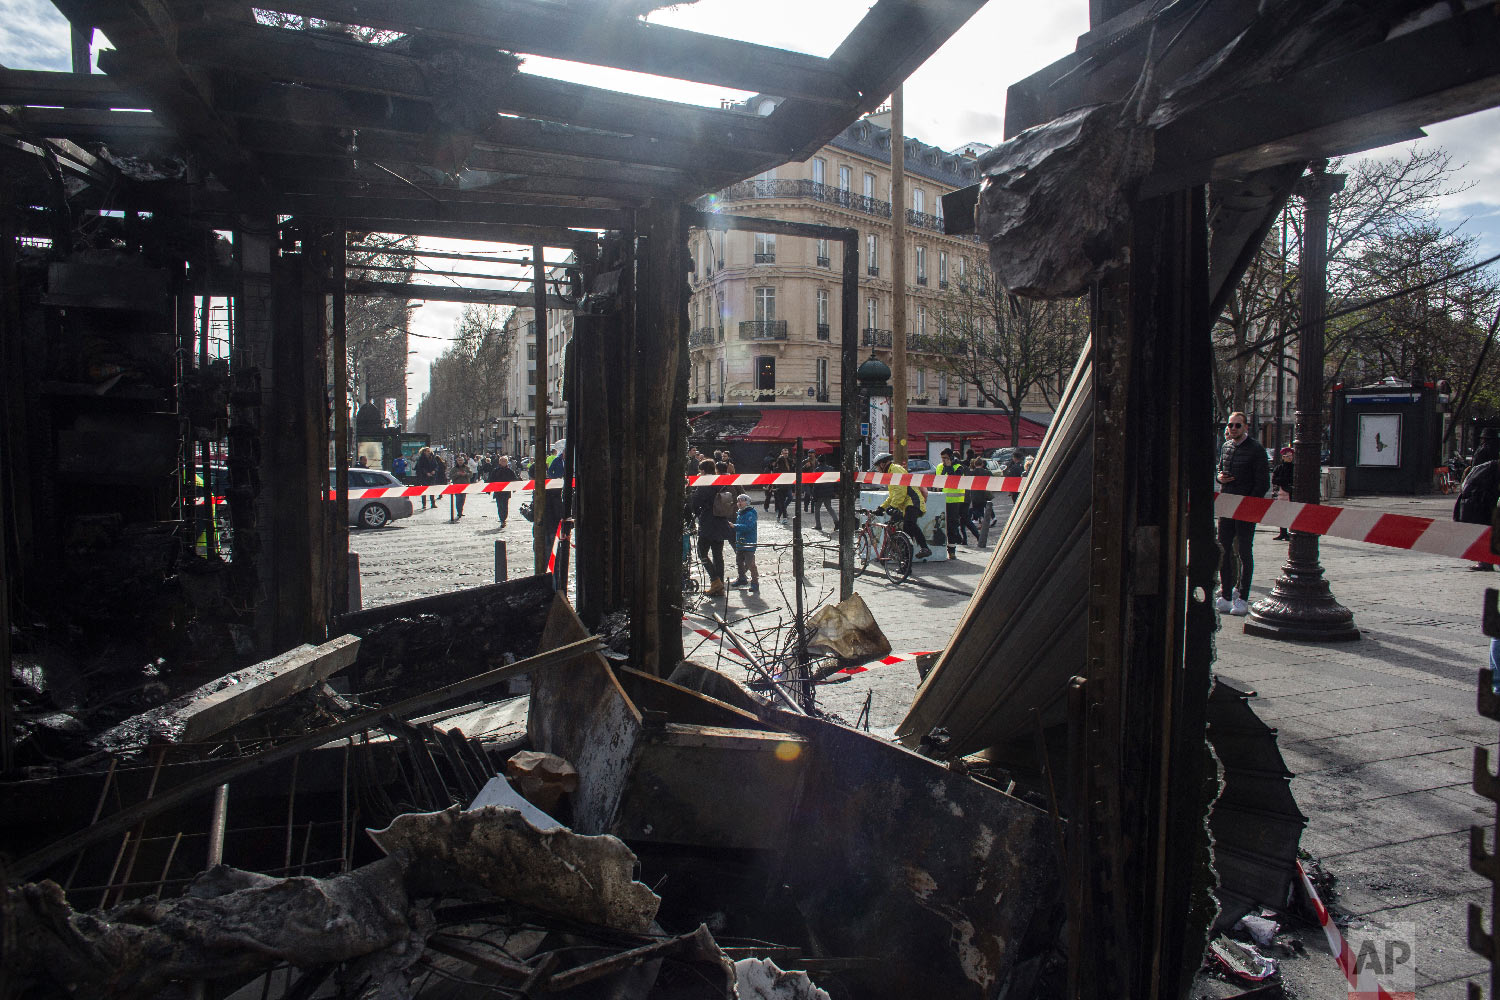 Inside view of the burned out remains of terrasse of the famed restaurant Le Fouquet's on the Champs Elysees the day after it was vandalized and set on fire in Paris, France, March 17, 2019. (AP Photo/Rafael Yaghobzadeh)